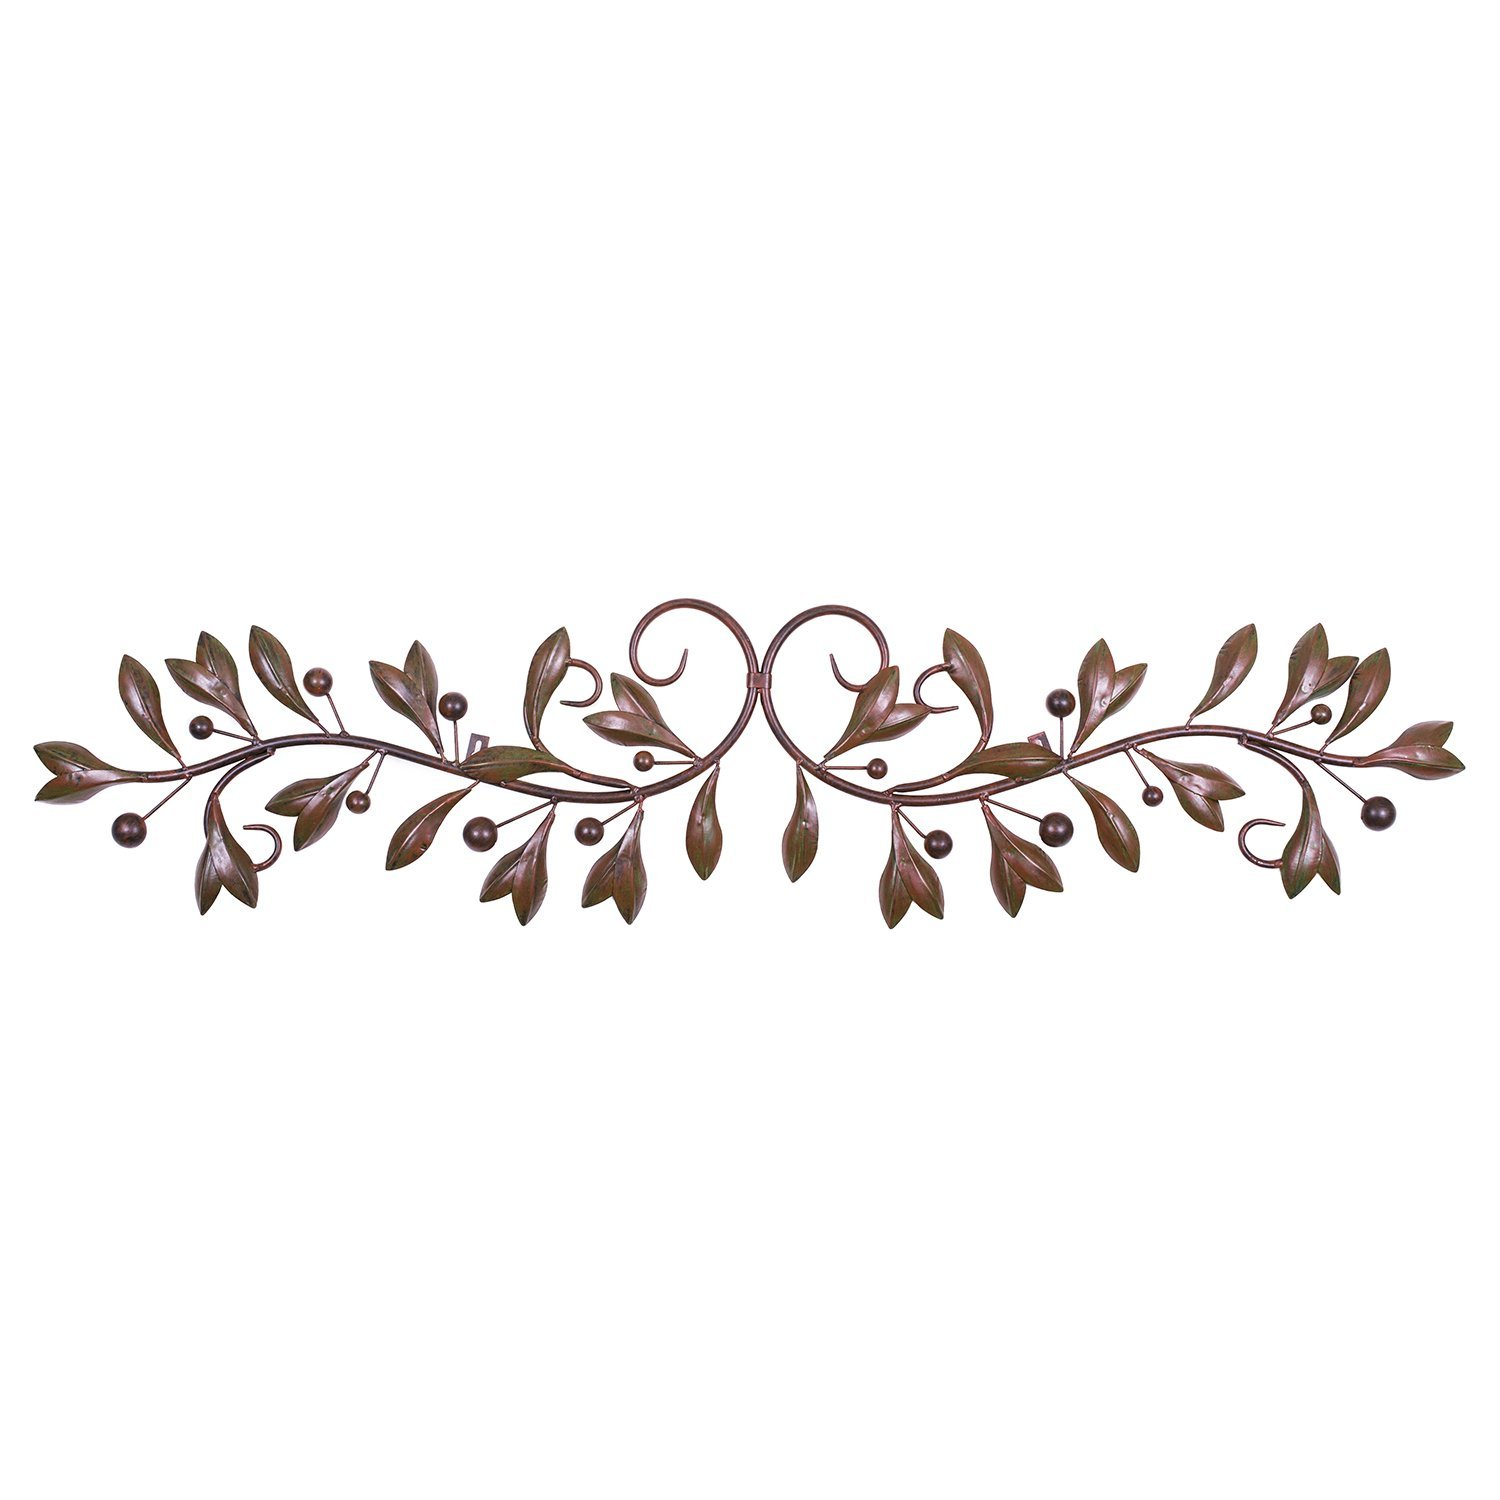 Brown Red Leaf & Beads Urban Design Metal Wall Decor for Nature Home Art Decoration & Kitchen Gifts by Super Z Outlet